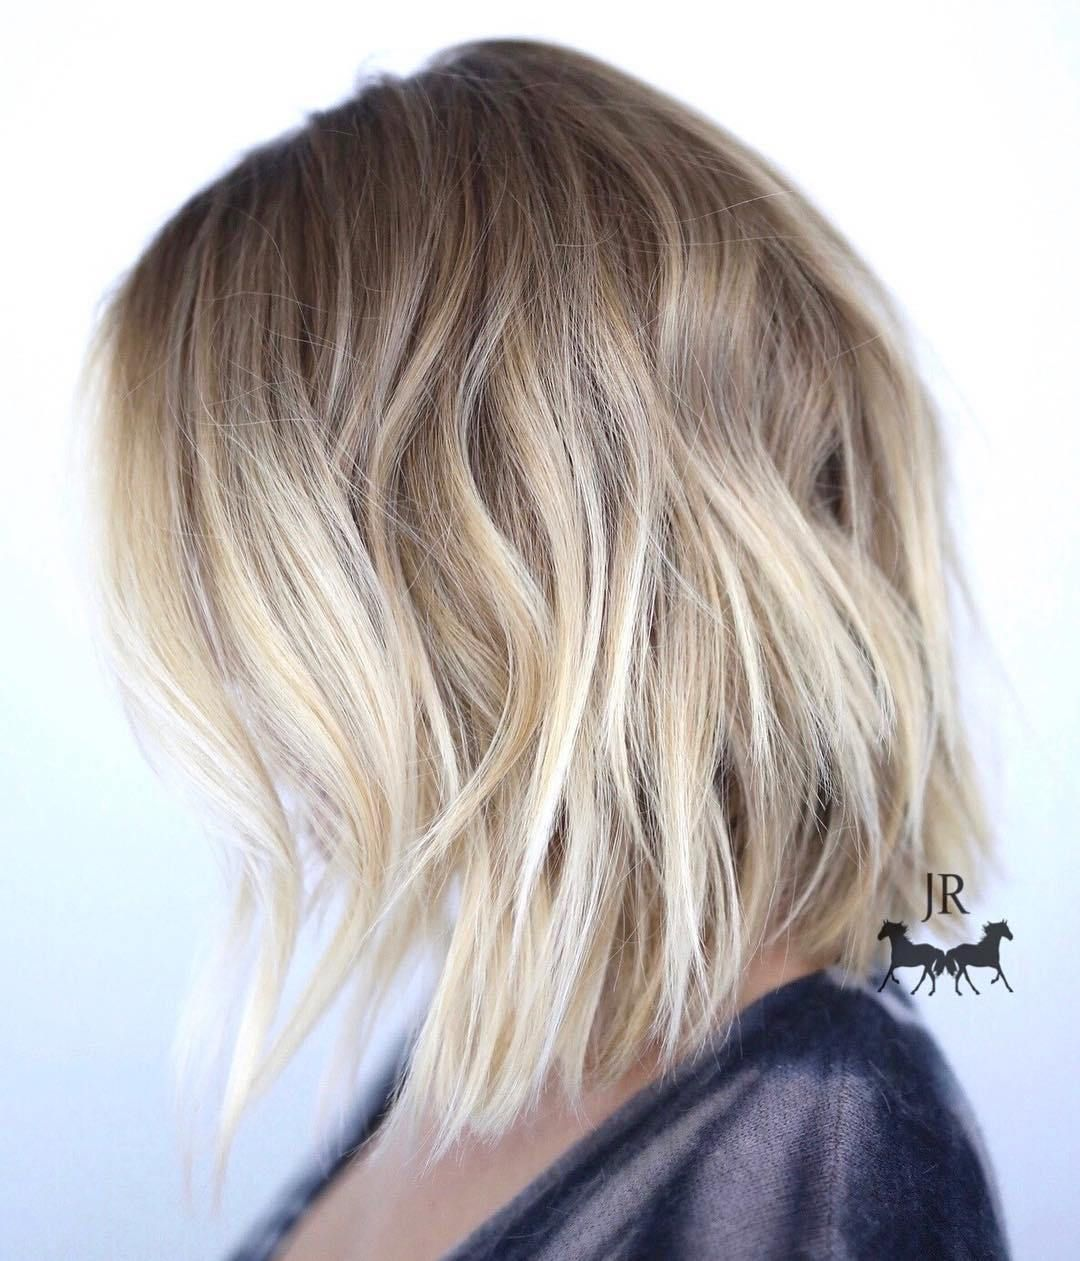 Medium Bob Hairstyles 2019 For Women's And Teens 2